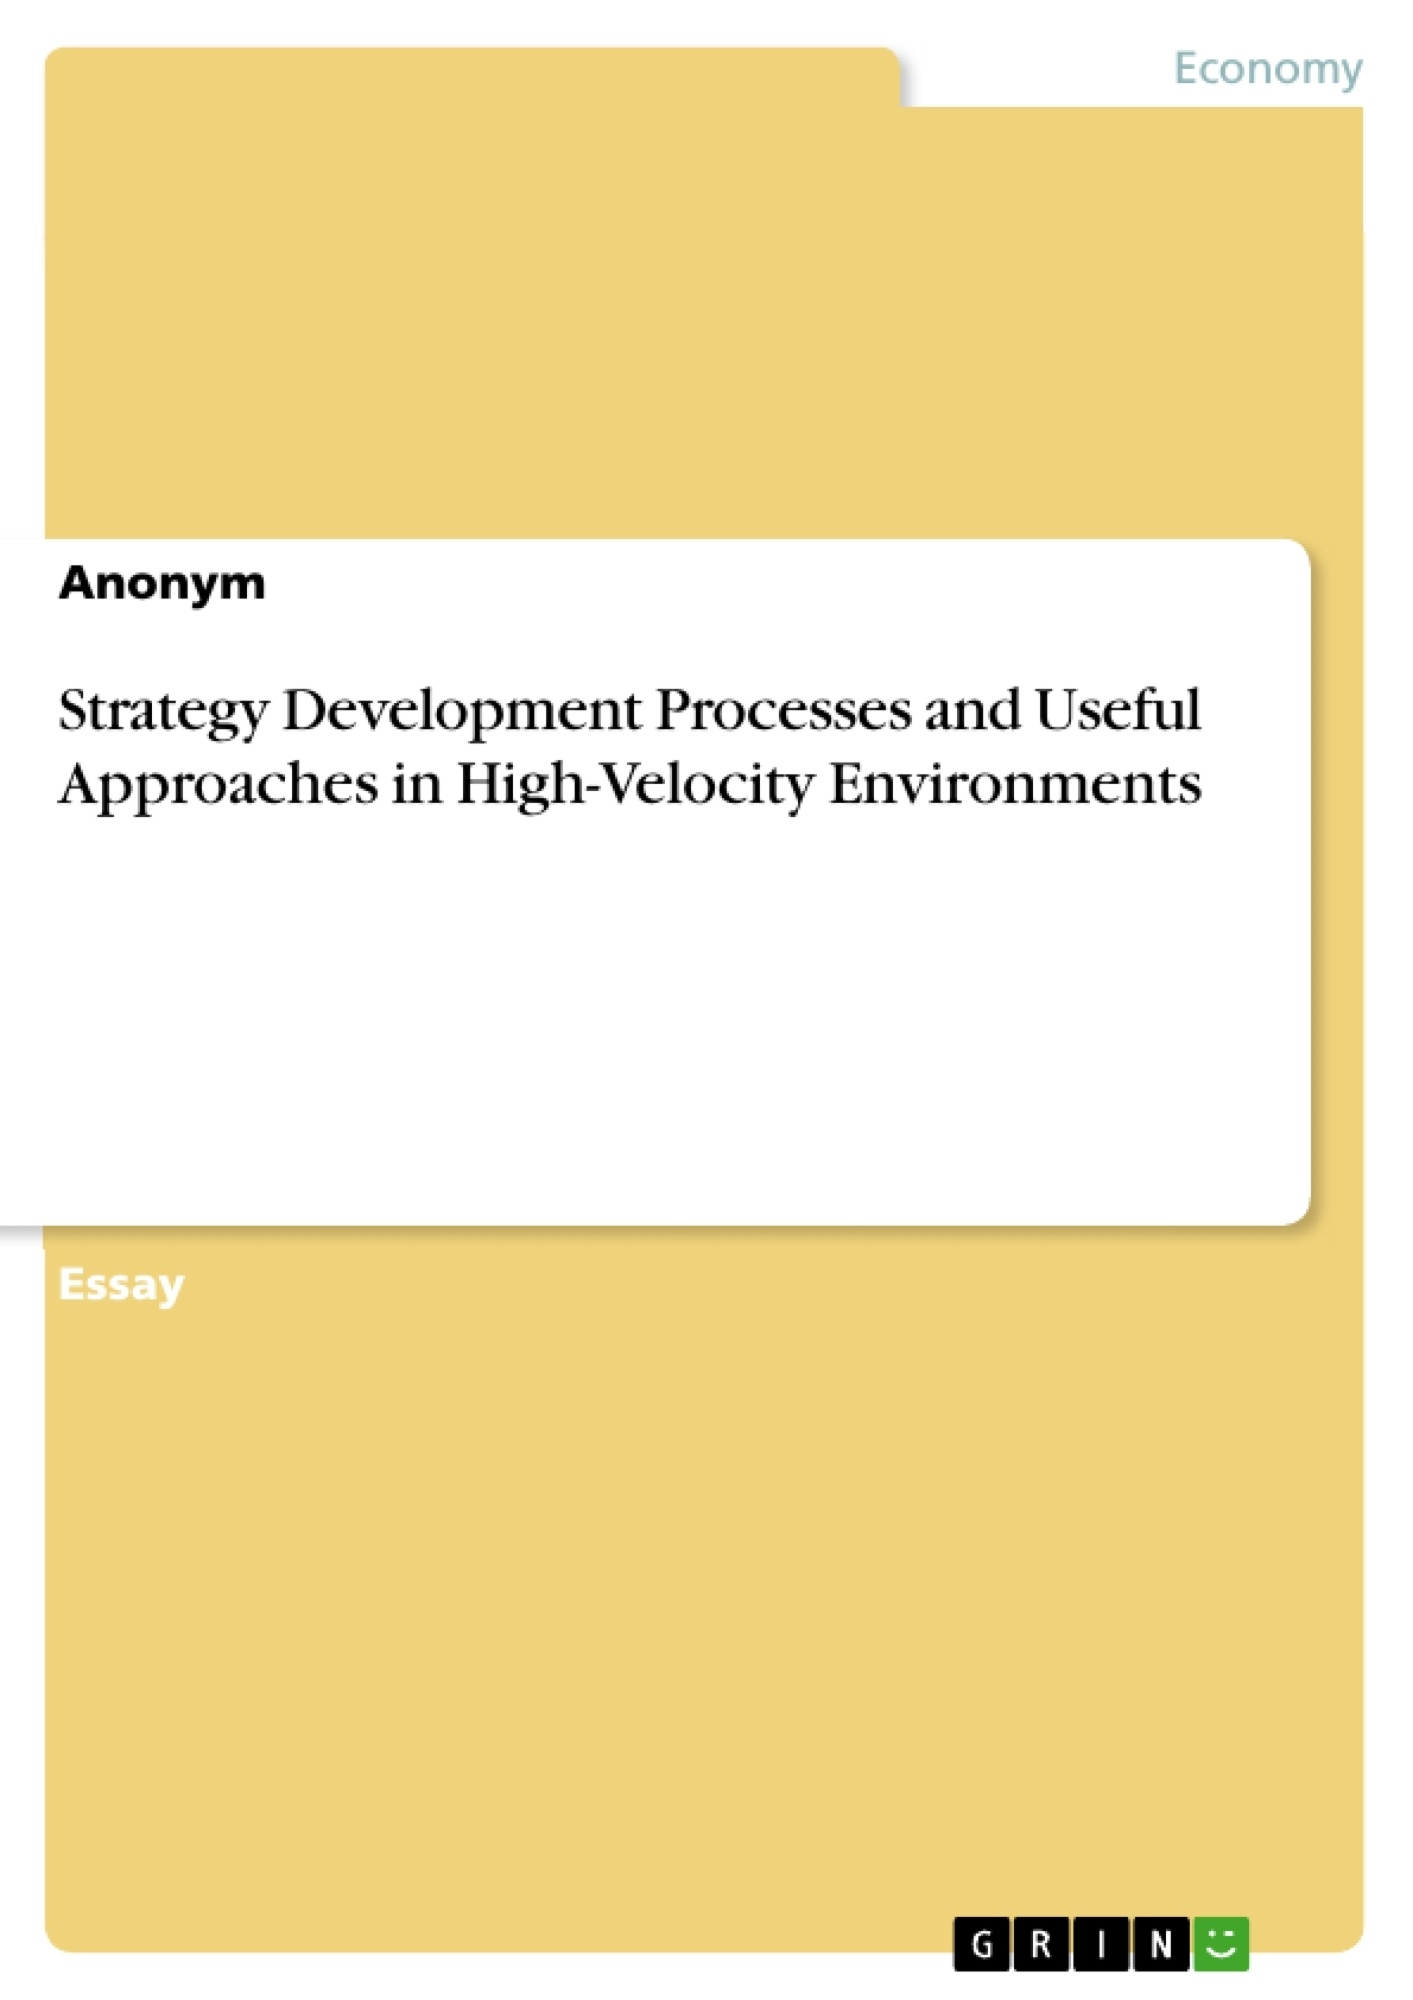 Title: Strategy Development Processes and Useful Approaches in High-Velocity Environments